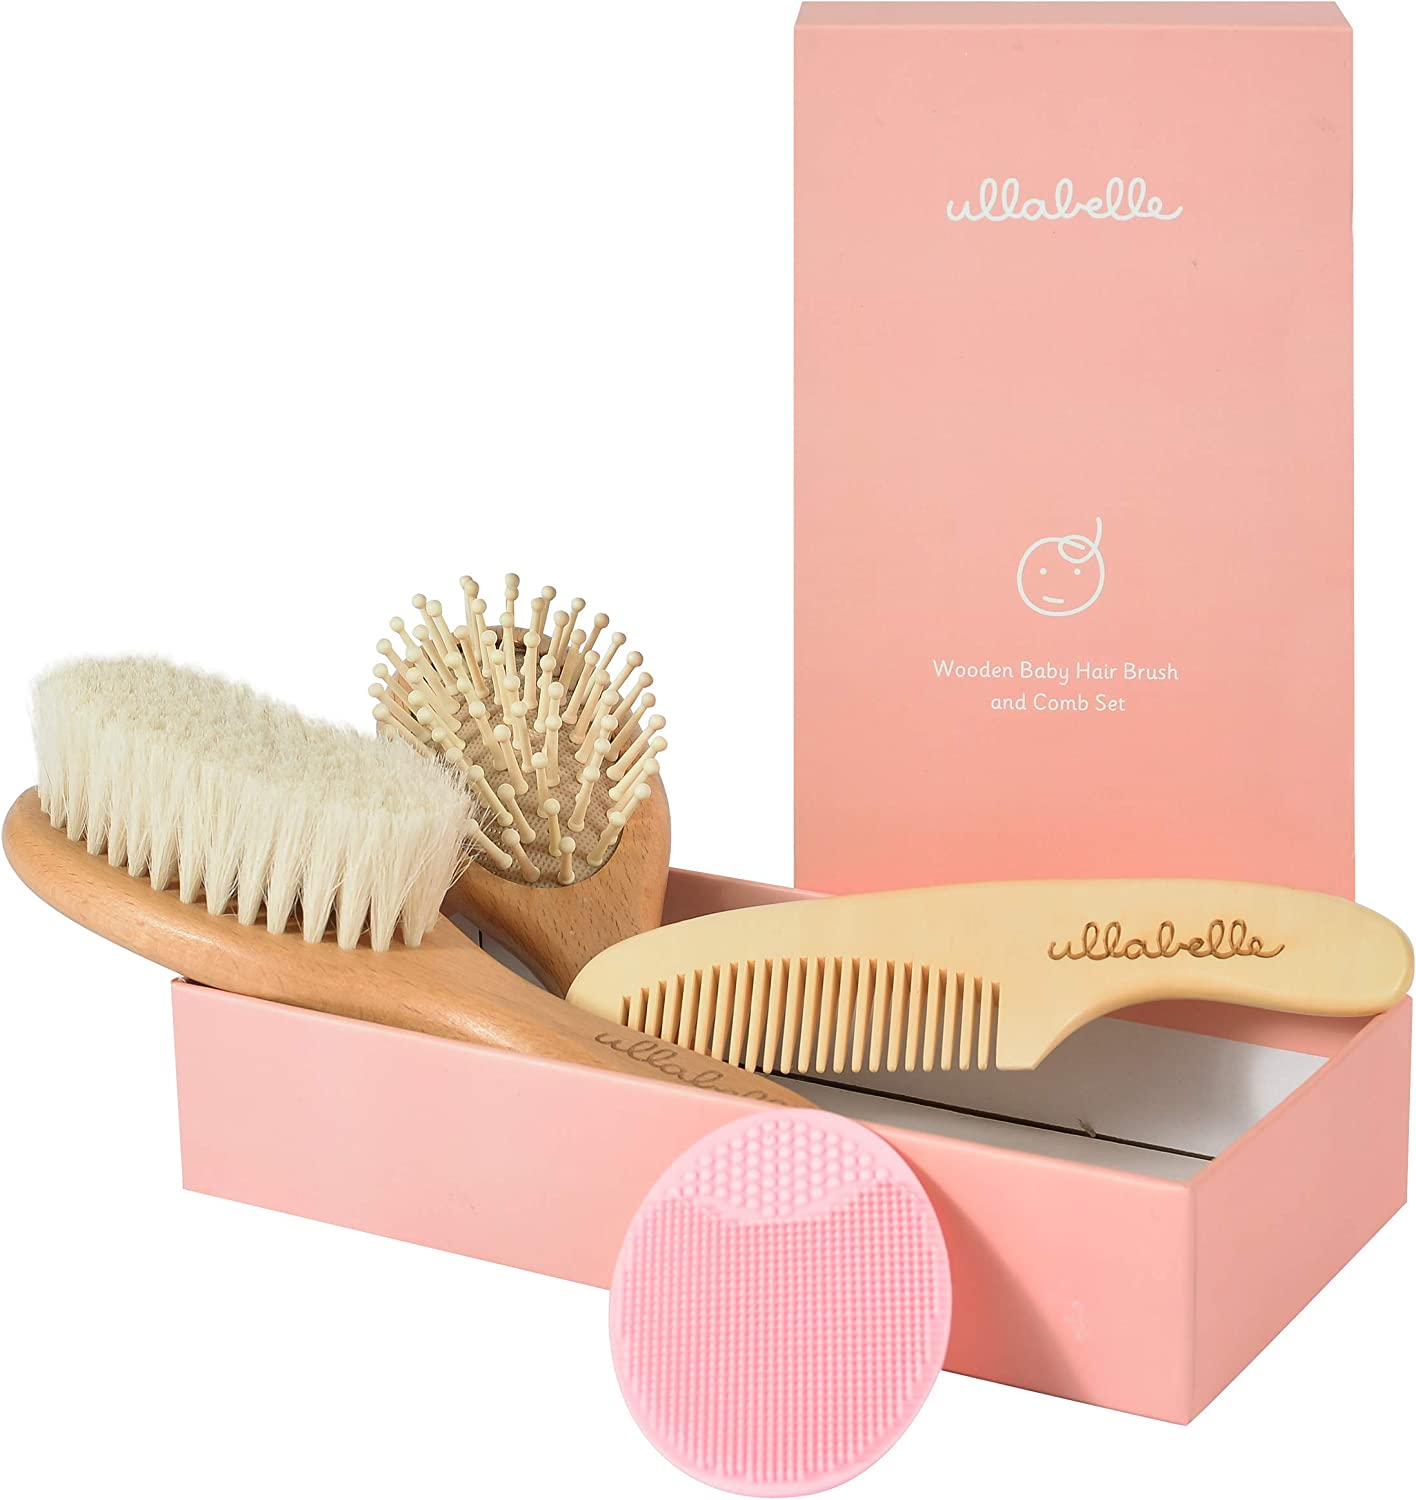 Ullabelle 4 Piece Wooden Baby Hair Brush and Comb Set for Newborns & Toddlers in Chic Gift Box - Ultra Soft Natural Goat Hair and Wood Baby Brush Set Prevents Cradle Cap - Perfect Registry Gift (Pink)